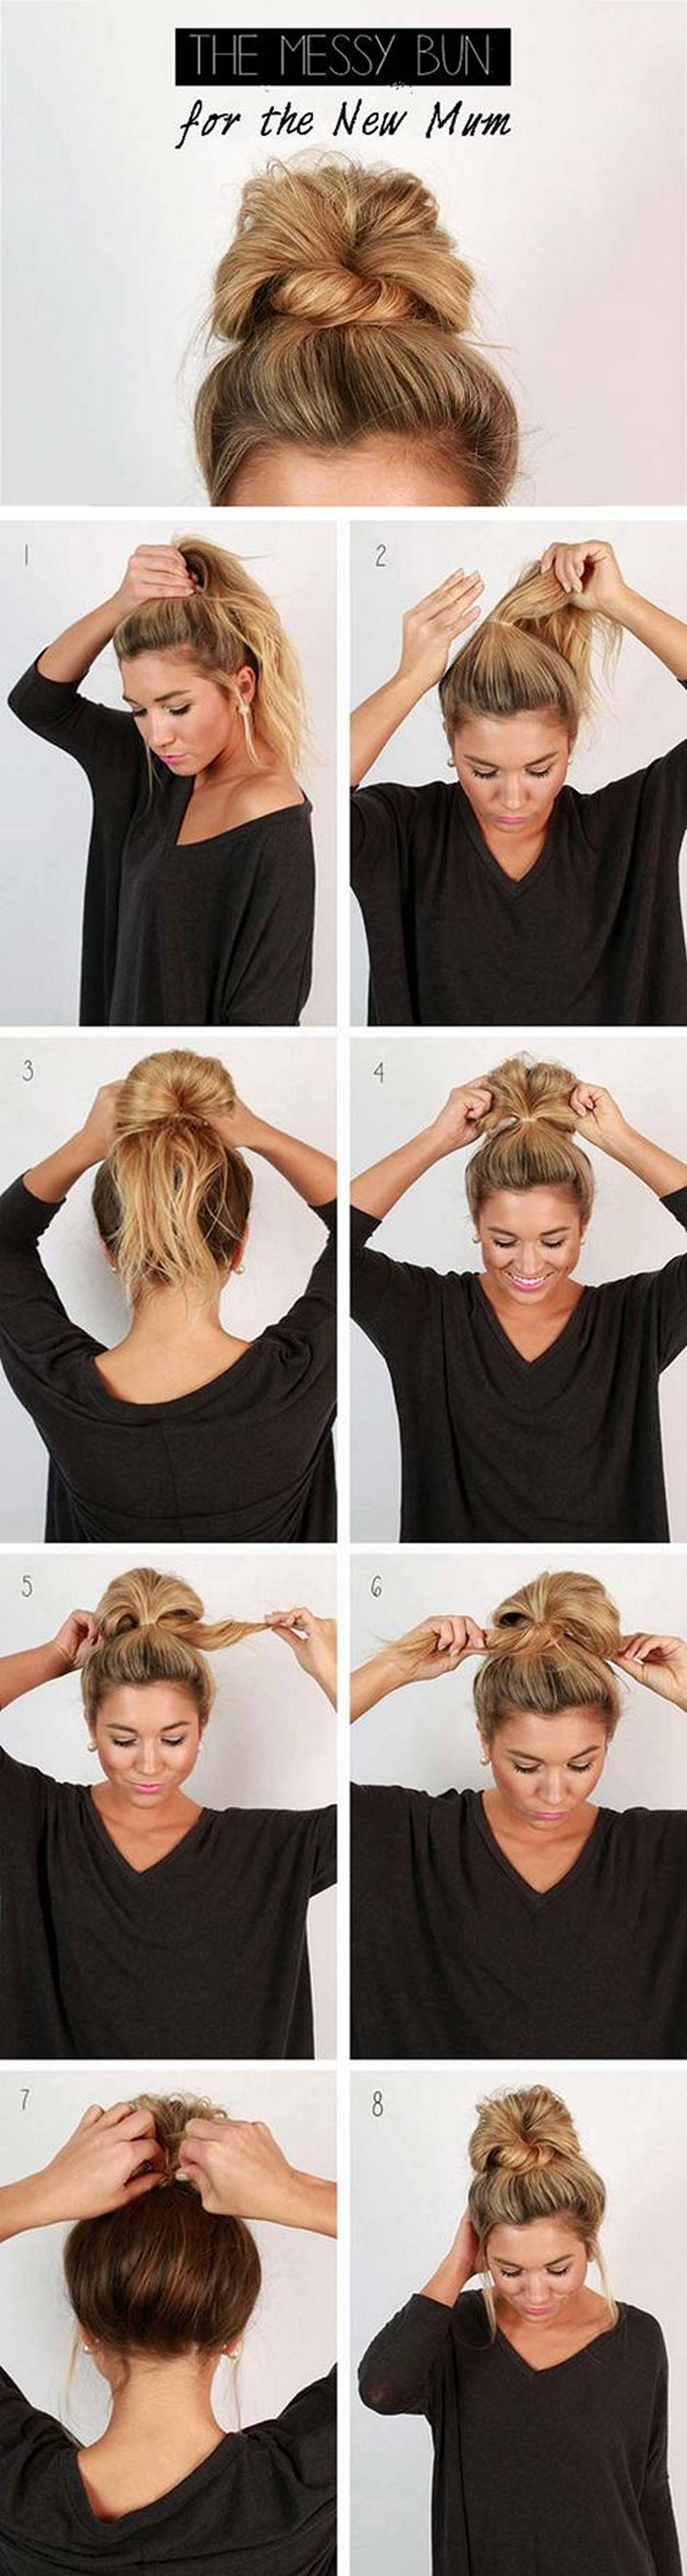 Hairstyles diy and tutorial for all hair lengths 026 | fashion